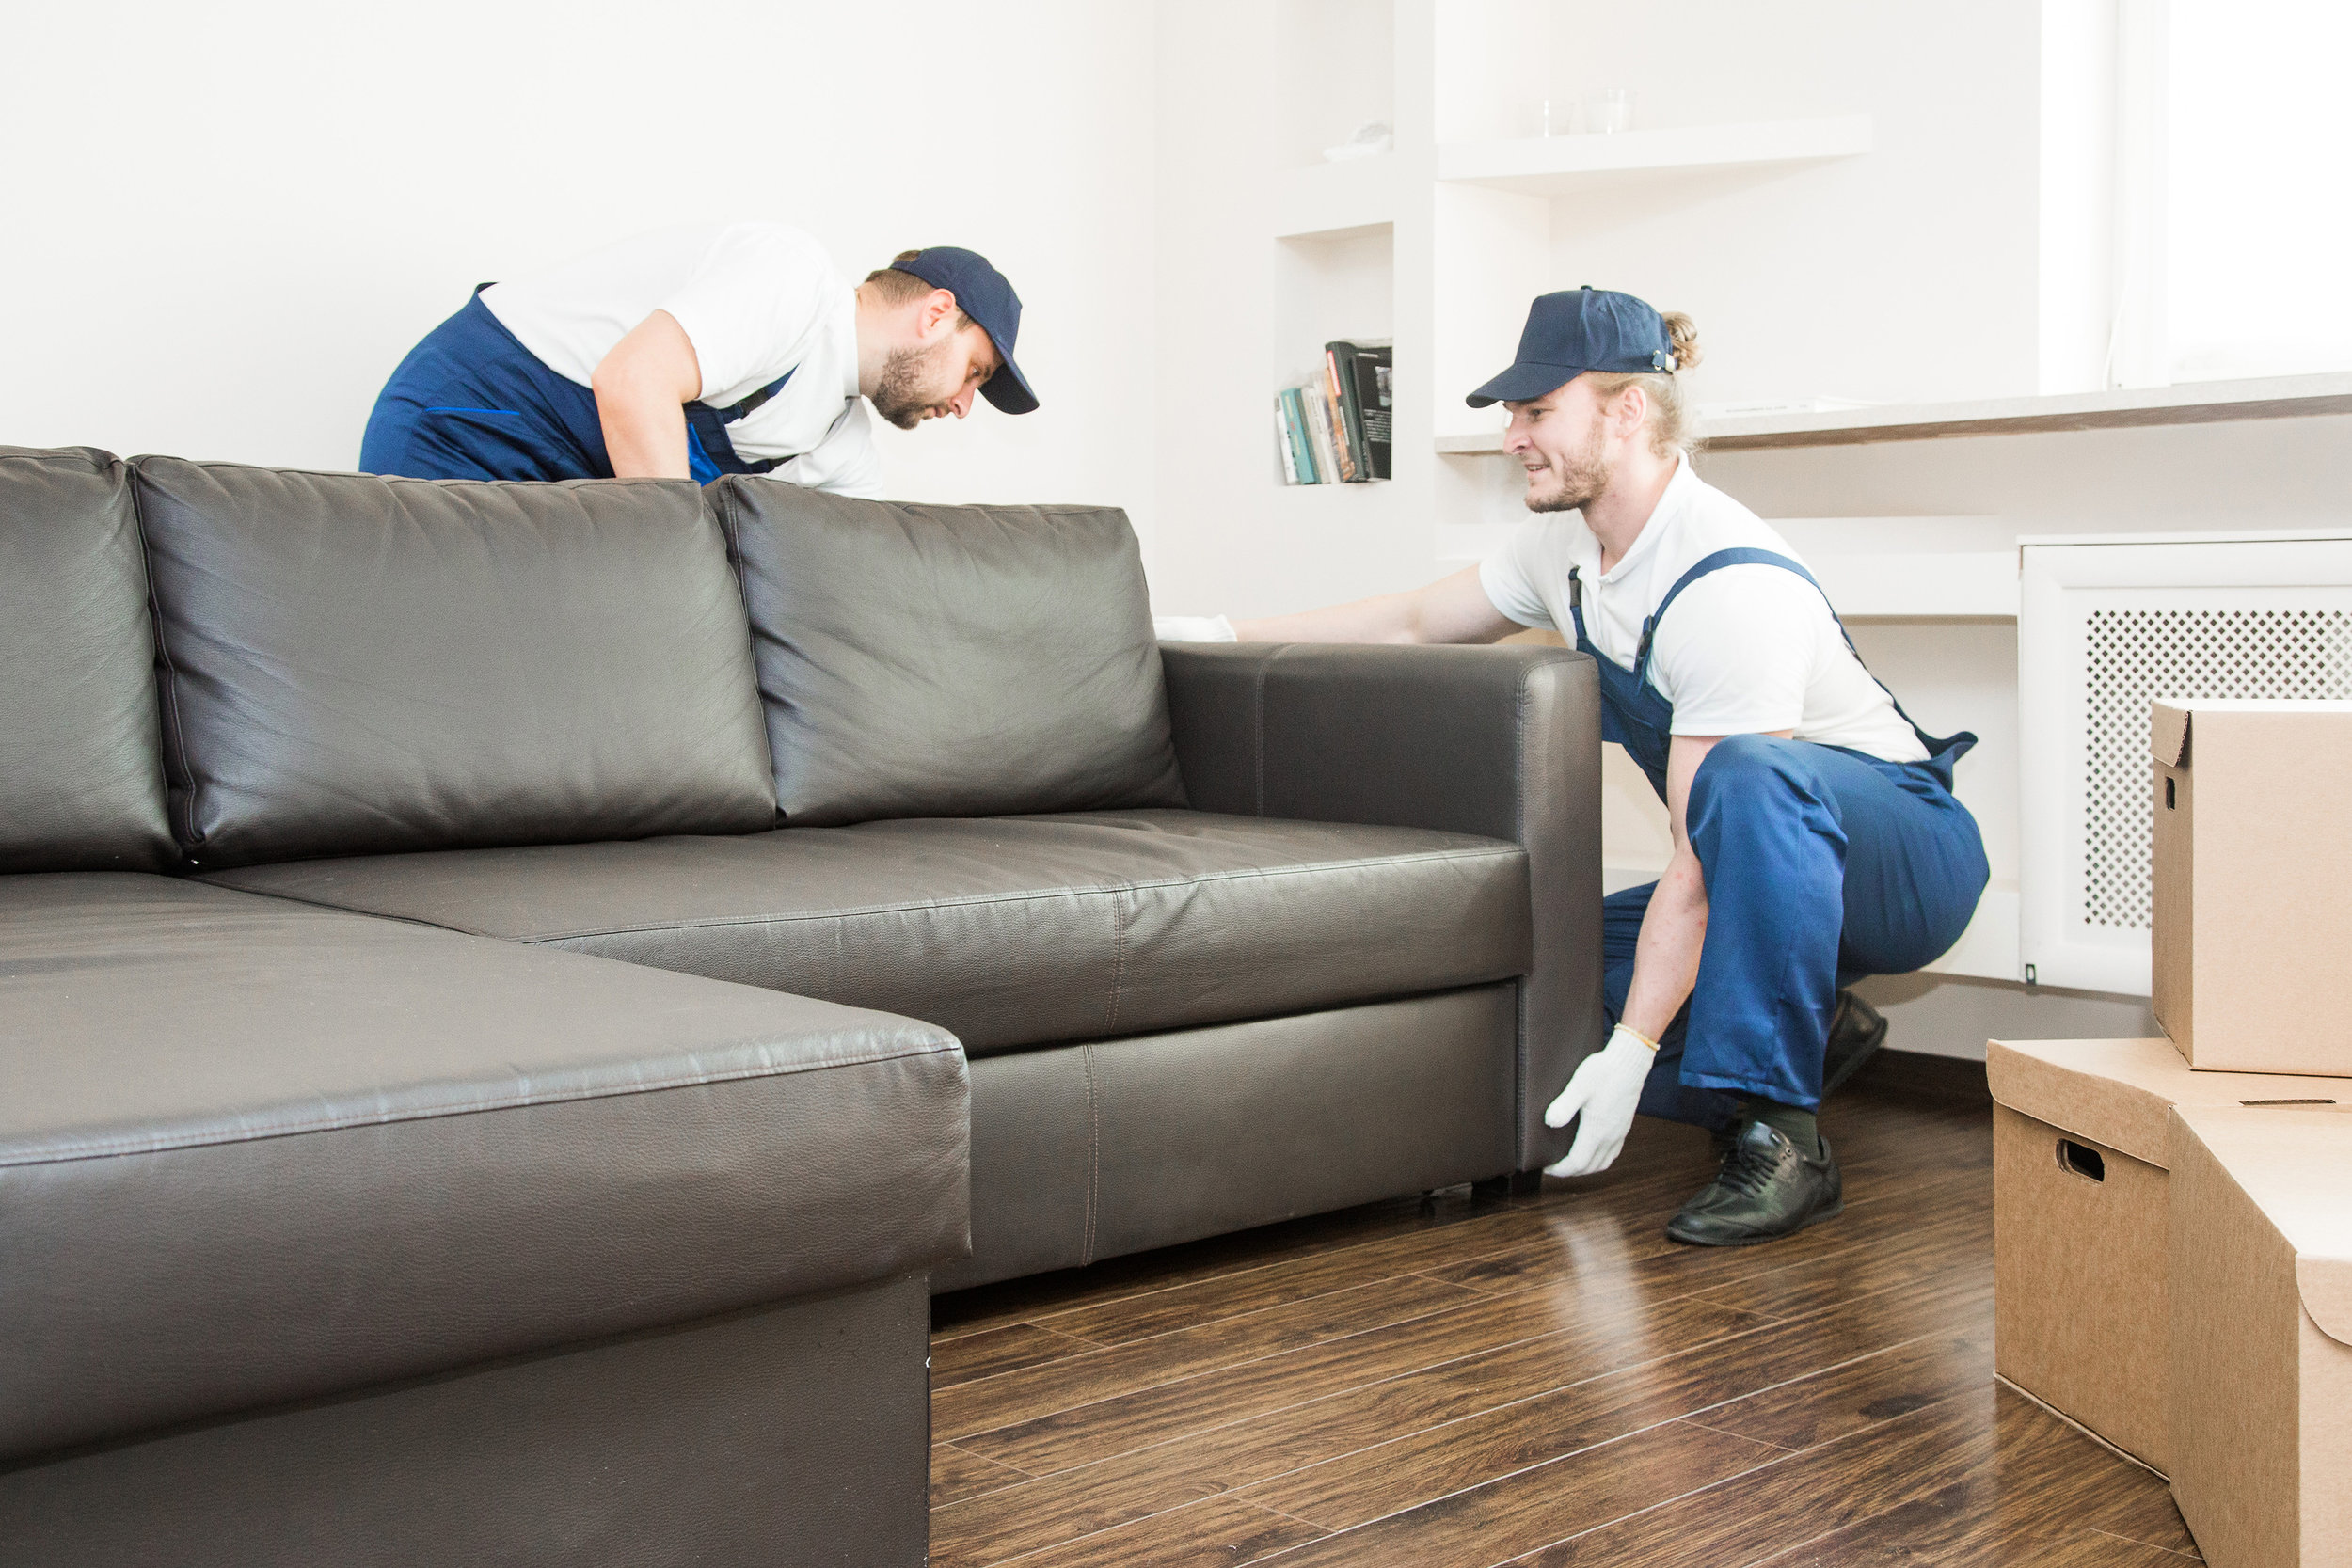 Interviewing, scheduling, and overseeing movers - We help you choose a mover and work with them on all the details leading up to your move and on moving day.